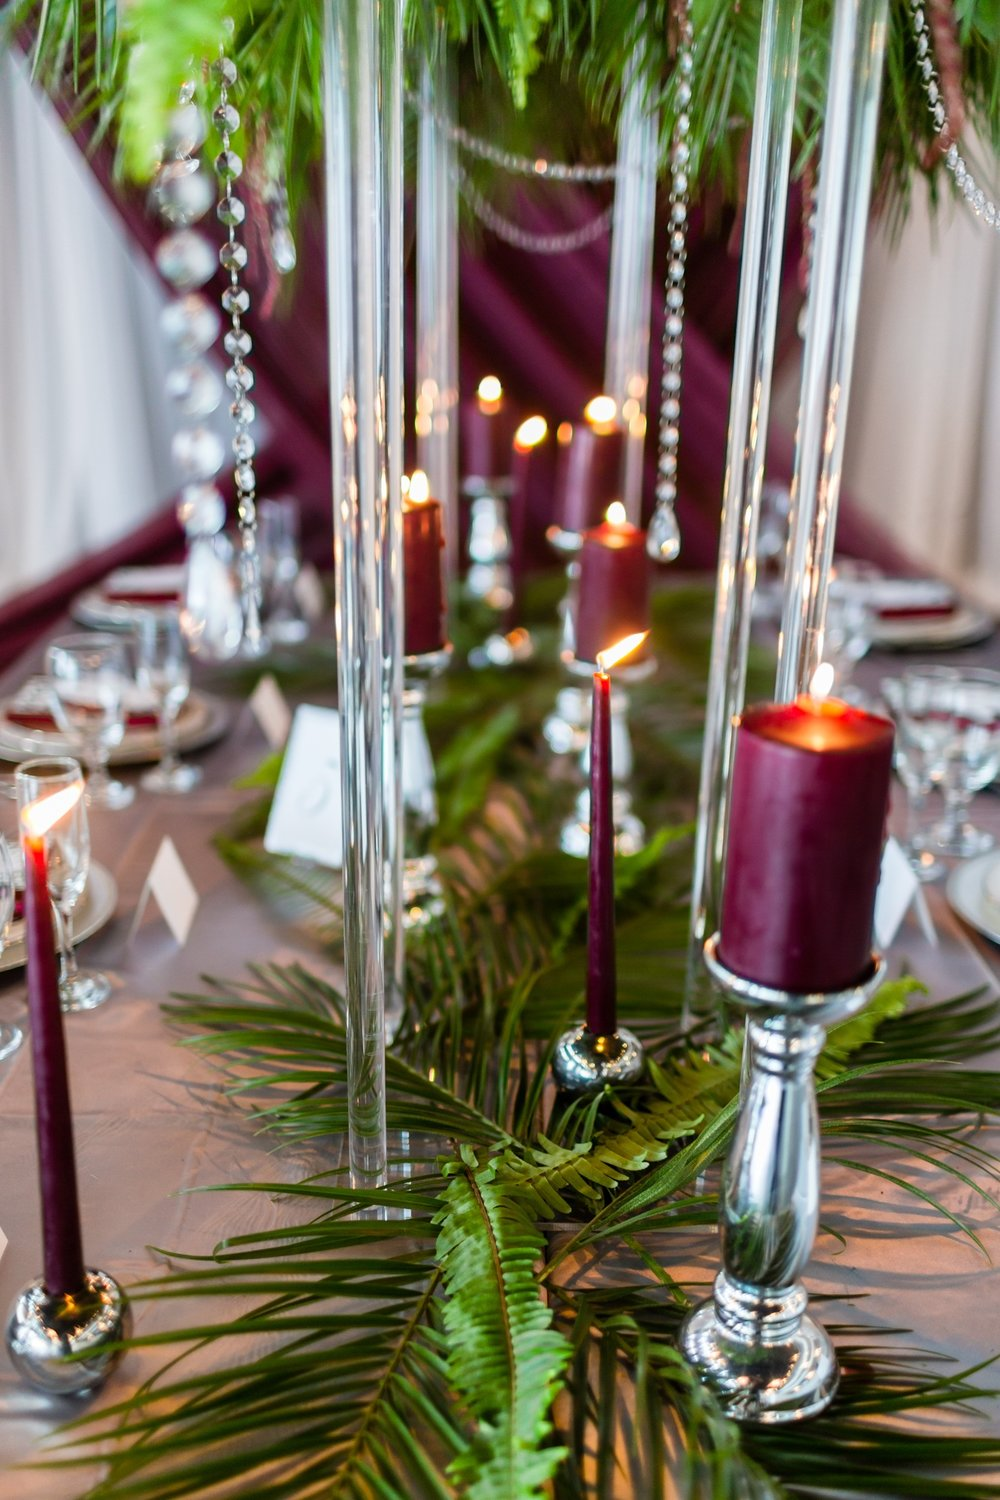 burgundy candles on silver candlesticks